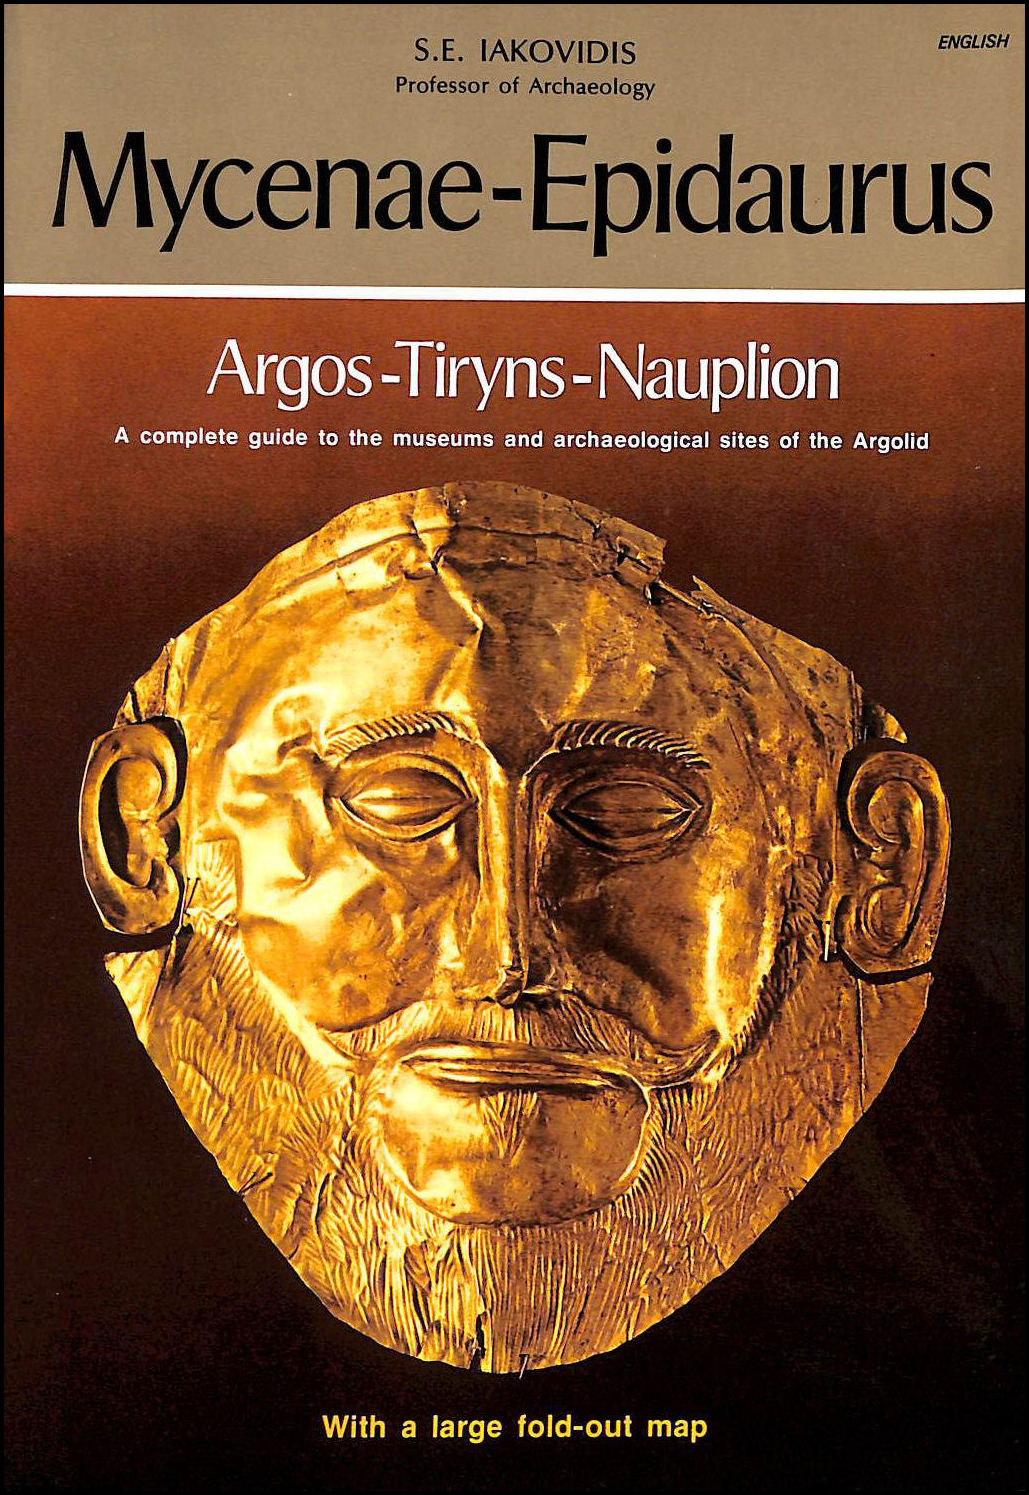 Image for Mycenae-Epidaurus, Argos-Tiryns-Nauplion: A Complete Guide to the Museums and Archaeological Sites of the Argolid